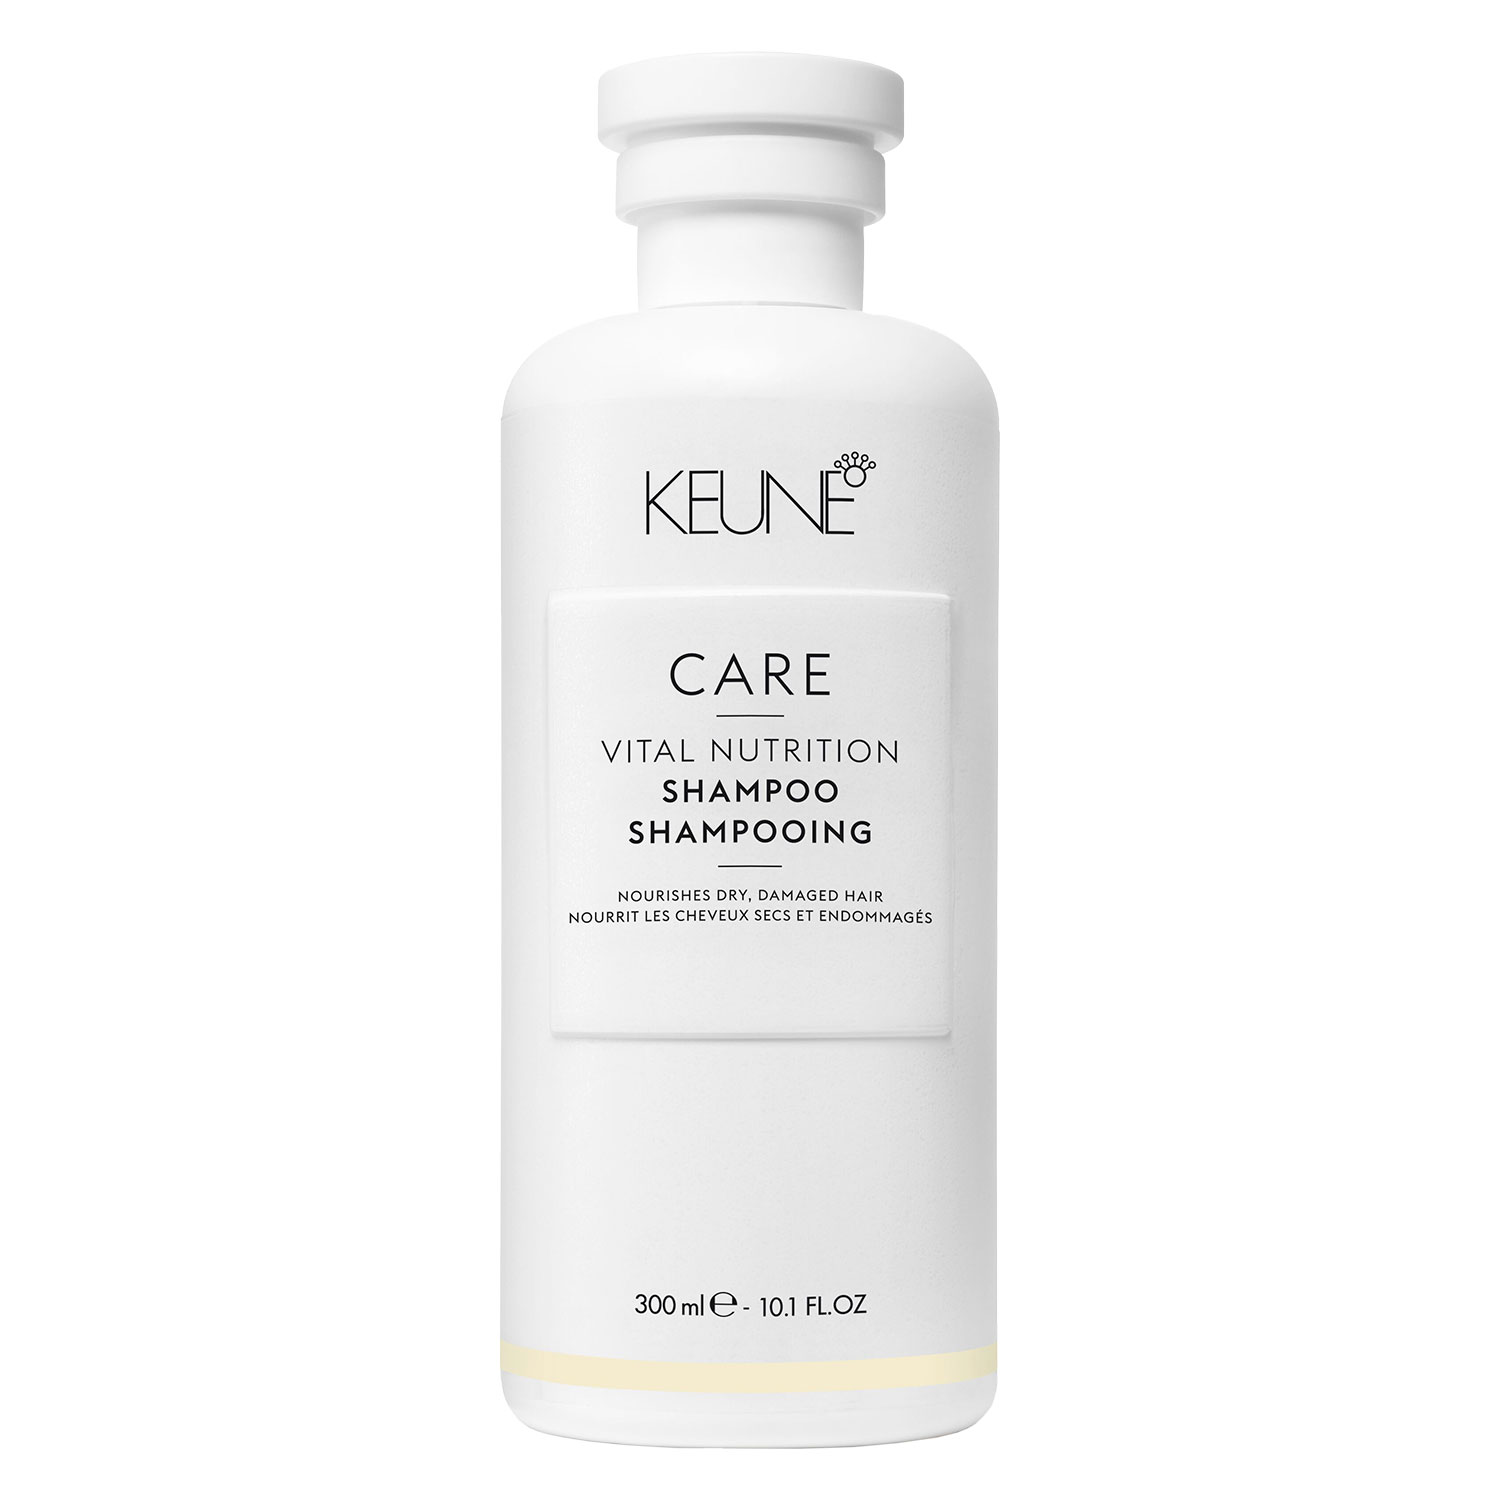 Keune Care - Vital Nutrition Shampoo